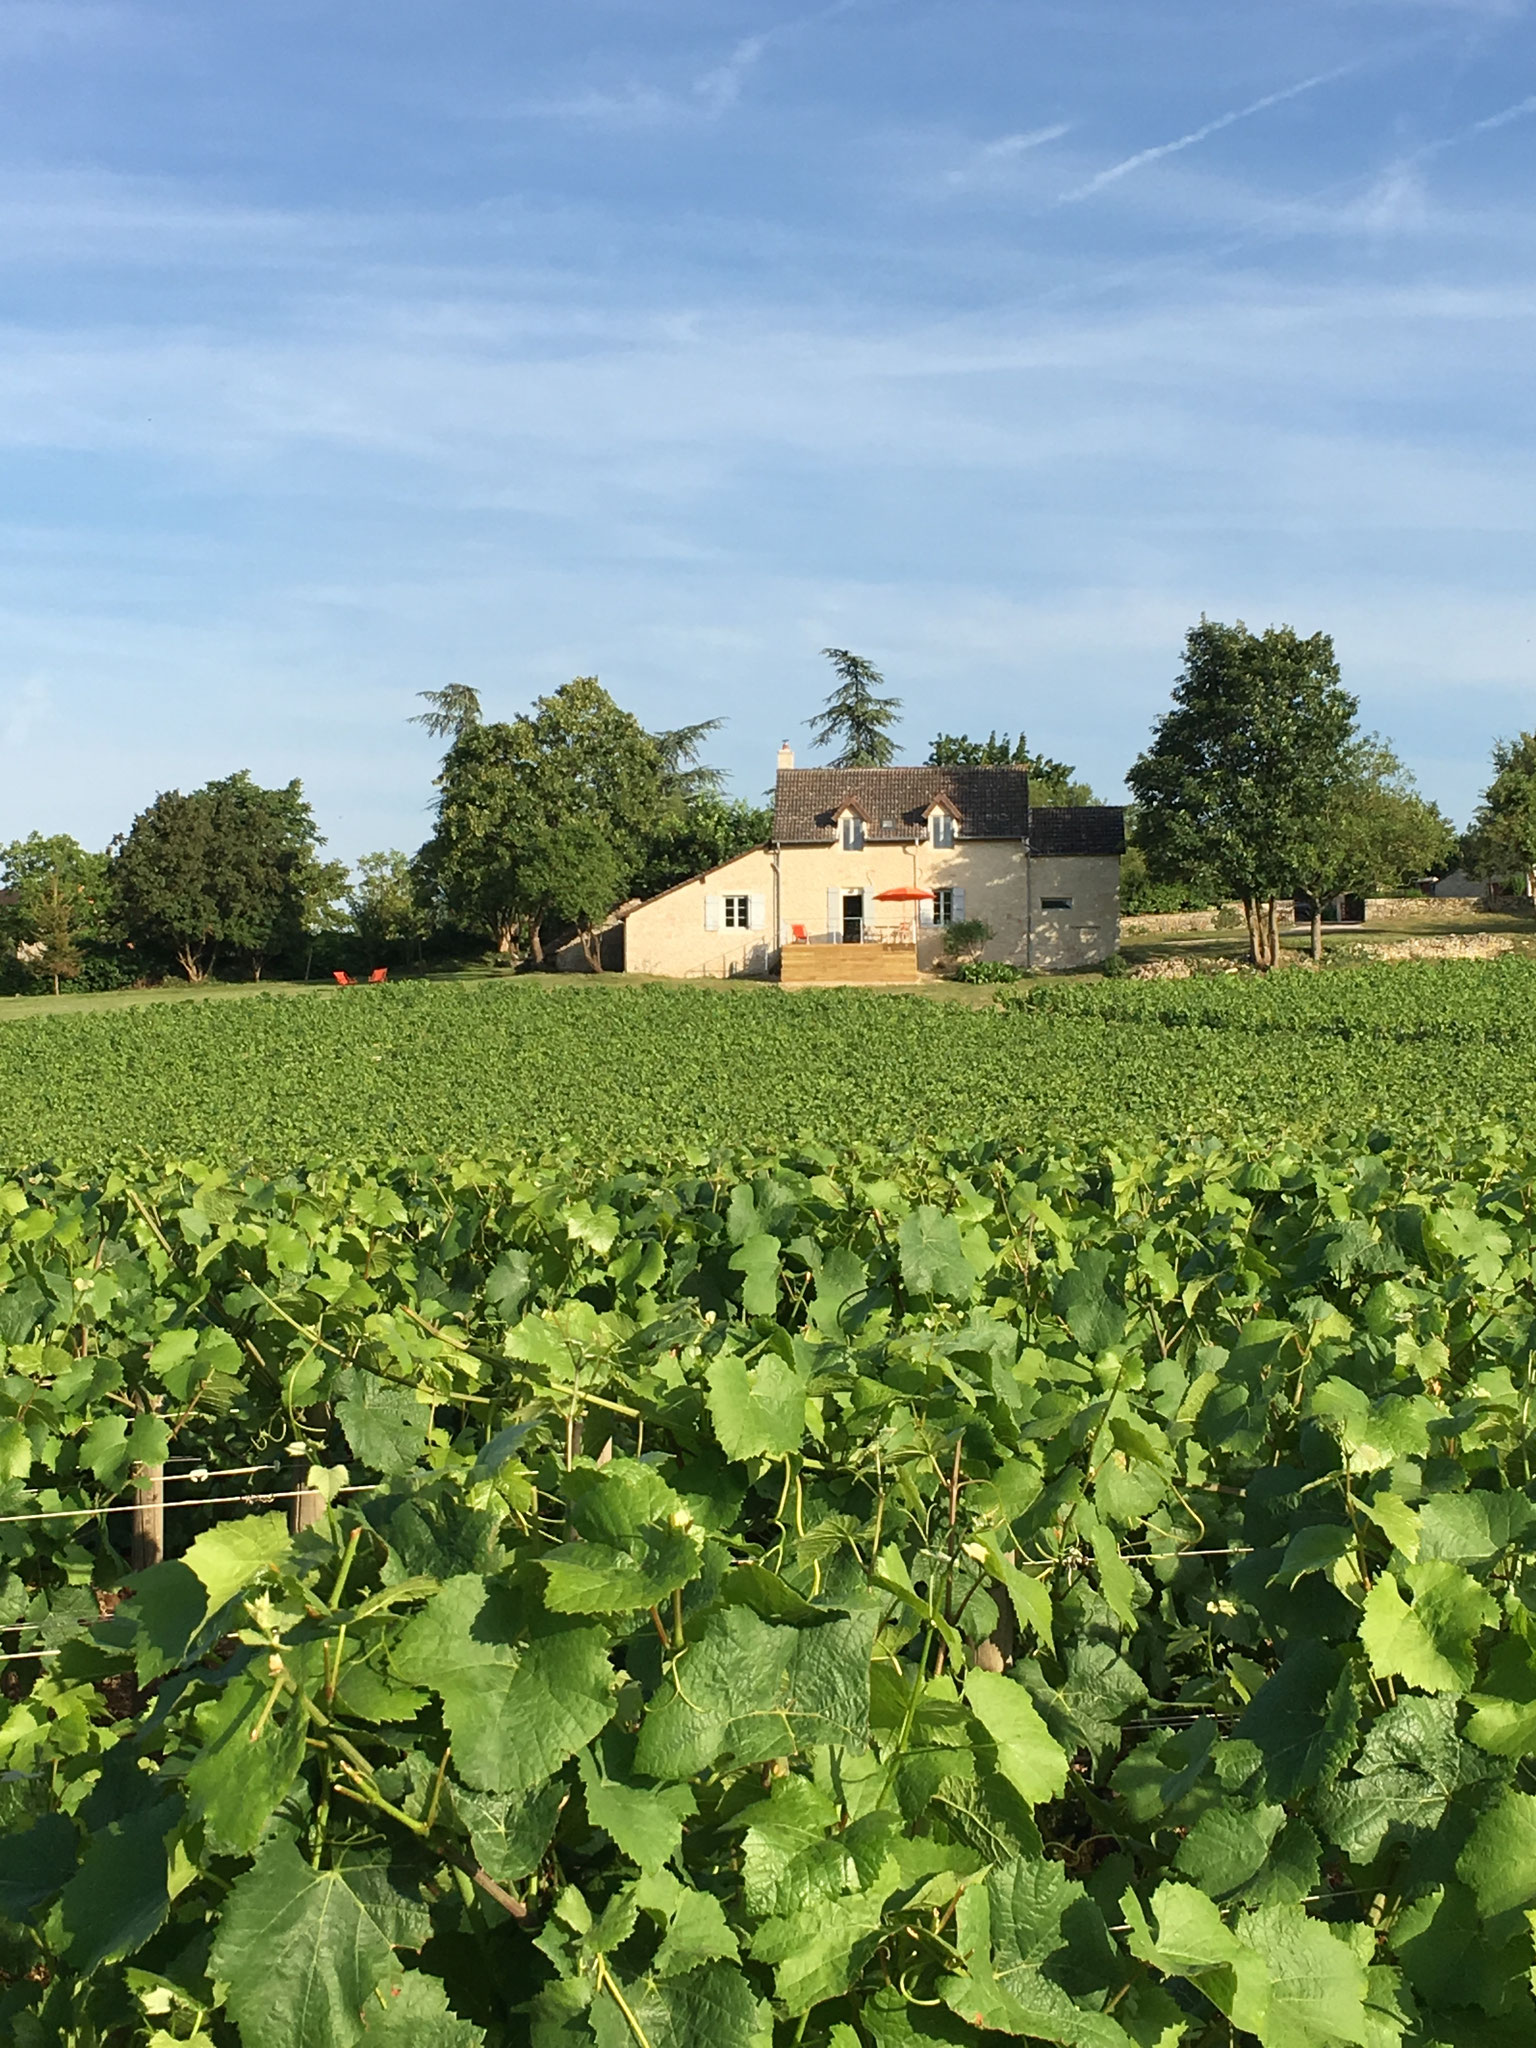 The vineyard in front of the guest house